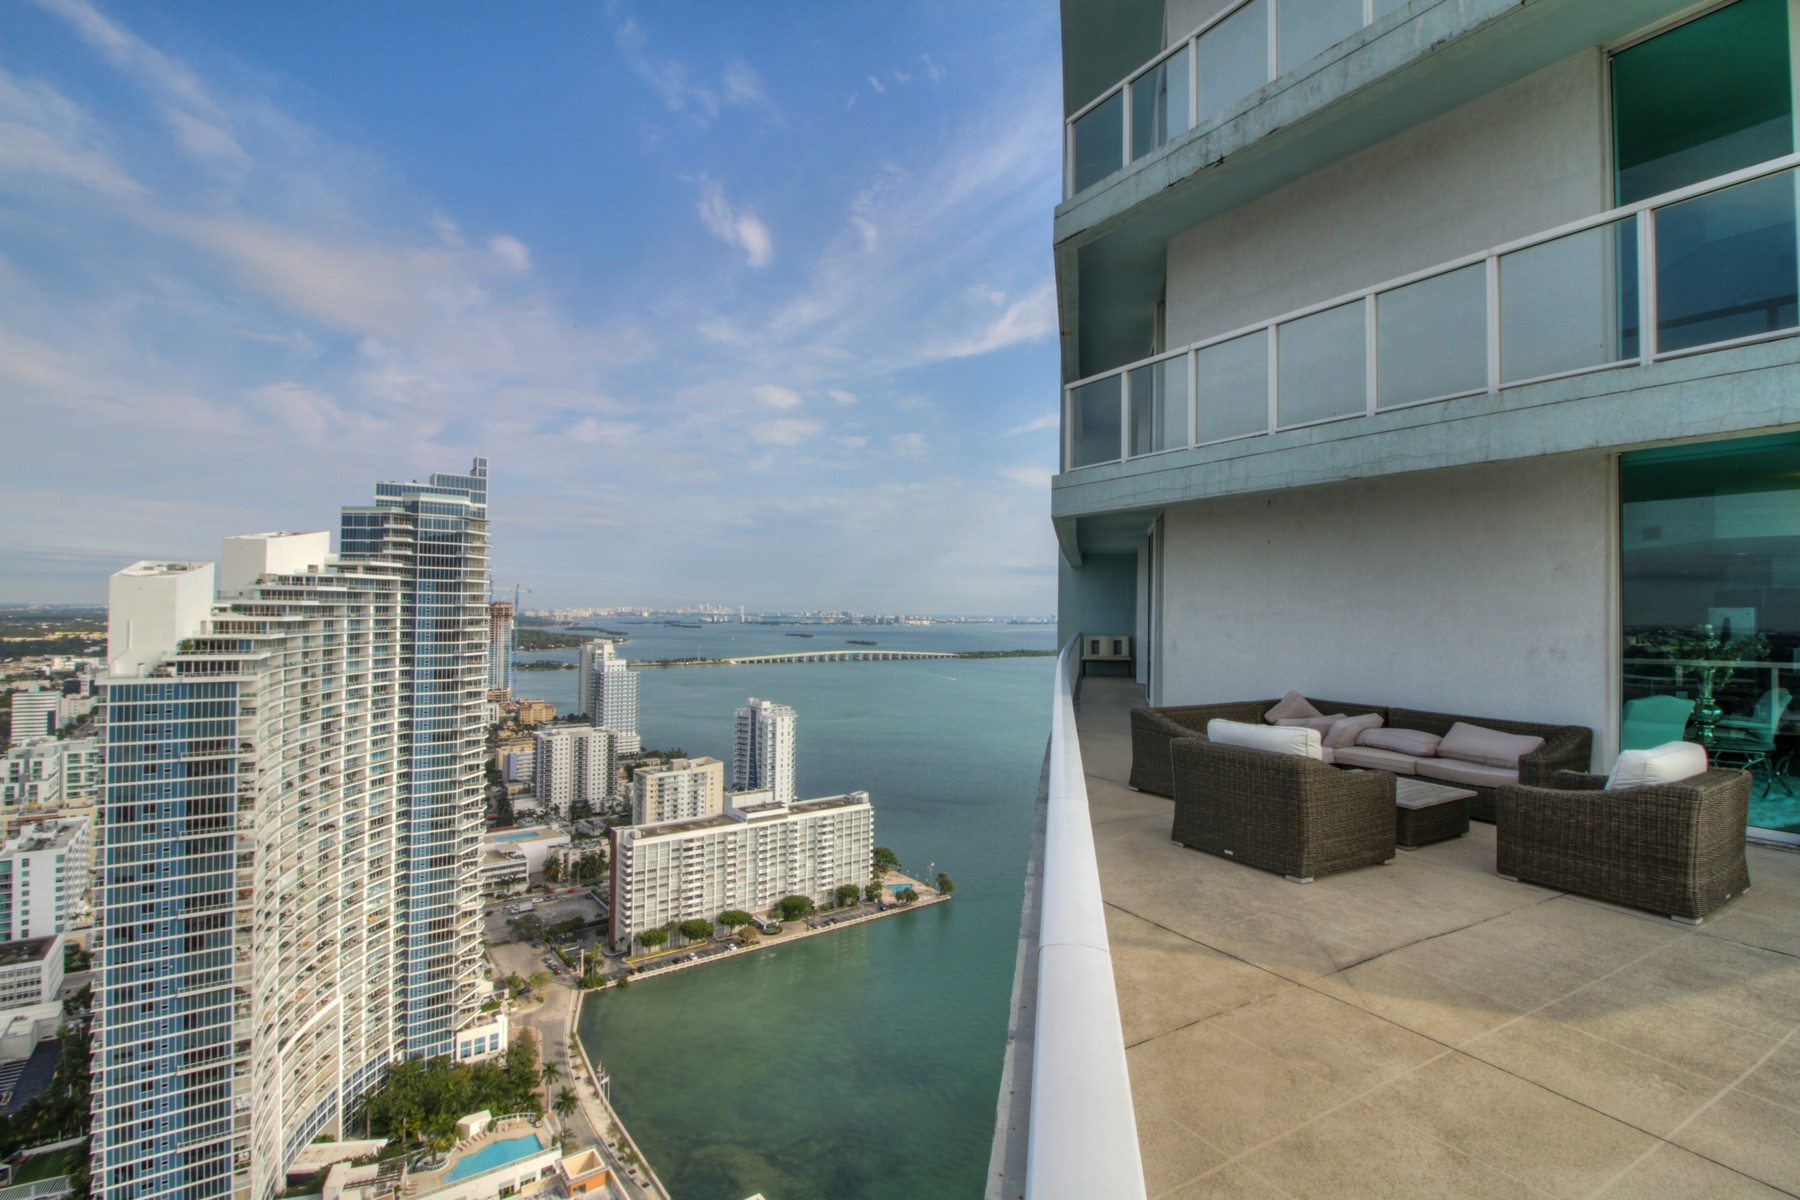 Property For Sale at 1900 N Bayshore Dr #4214 Miami, FL 33132